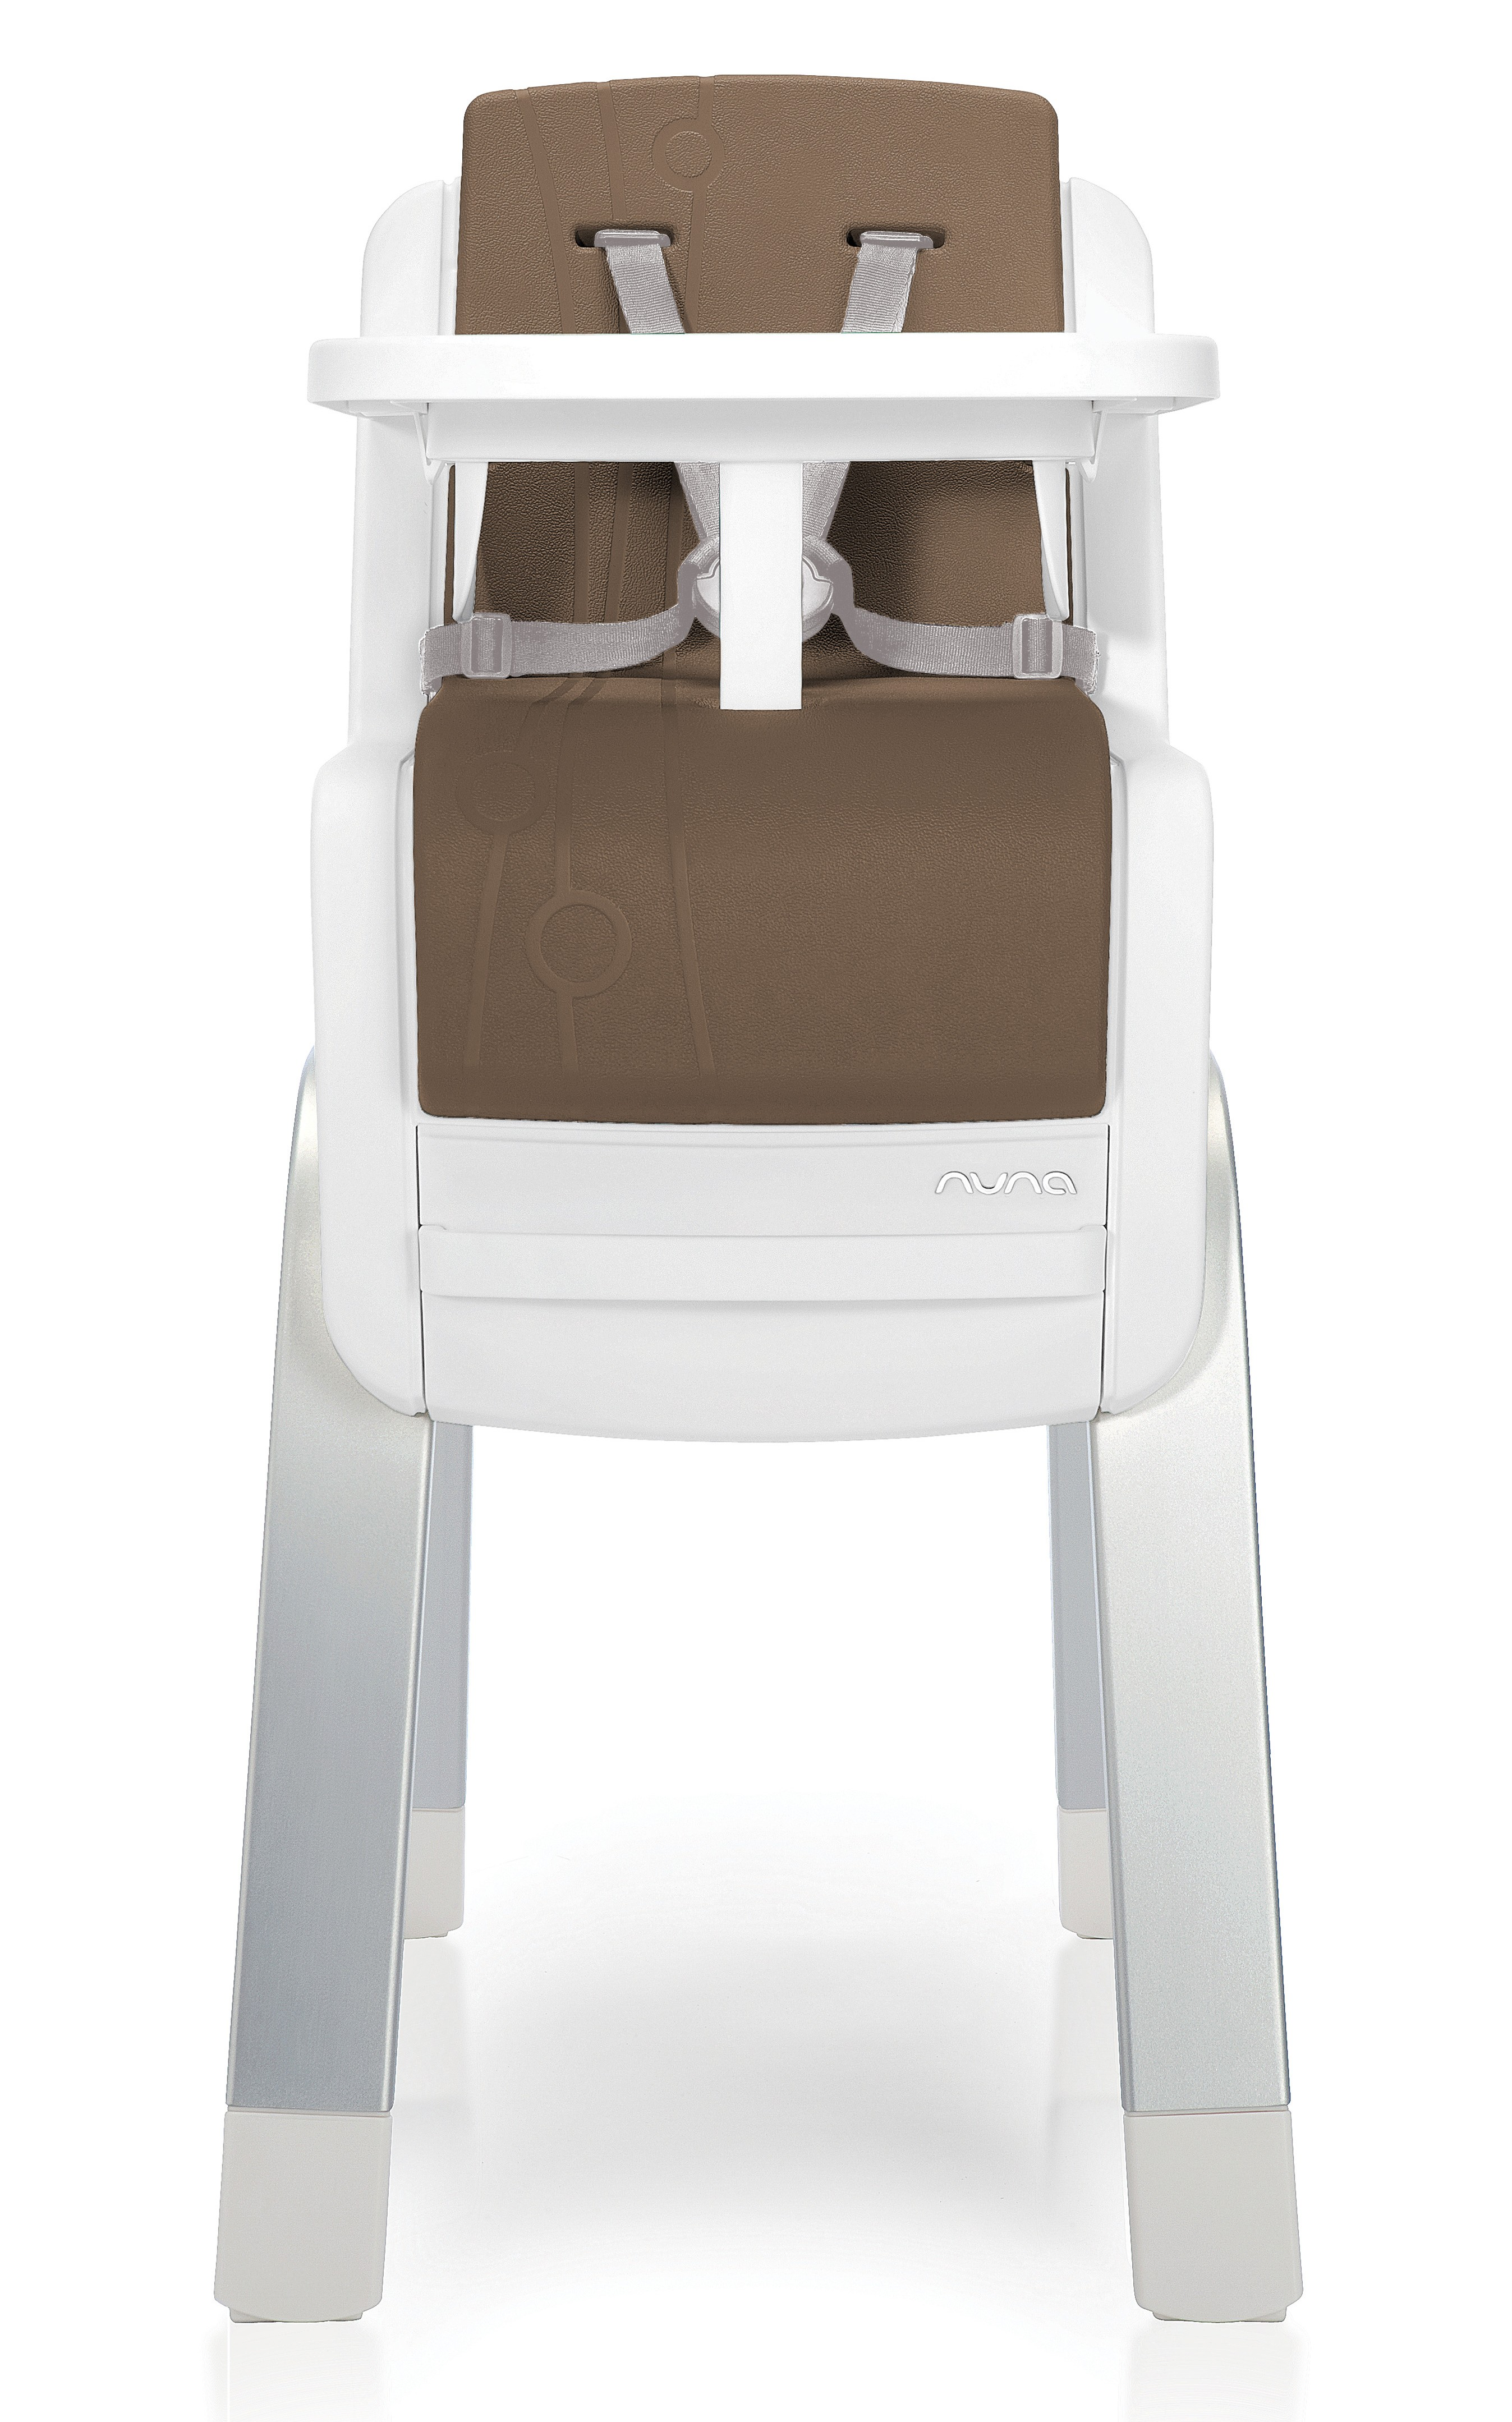 Nuna Zaaz High Chair Nuna Zaaz High Chair